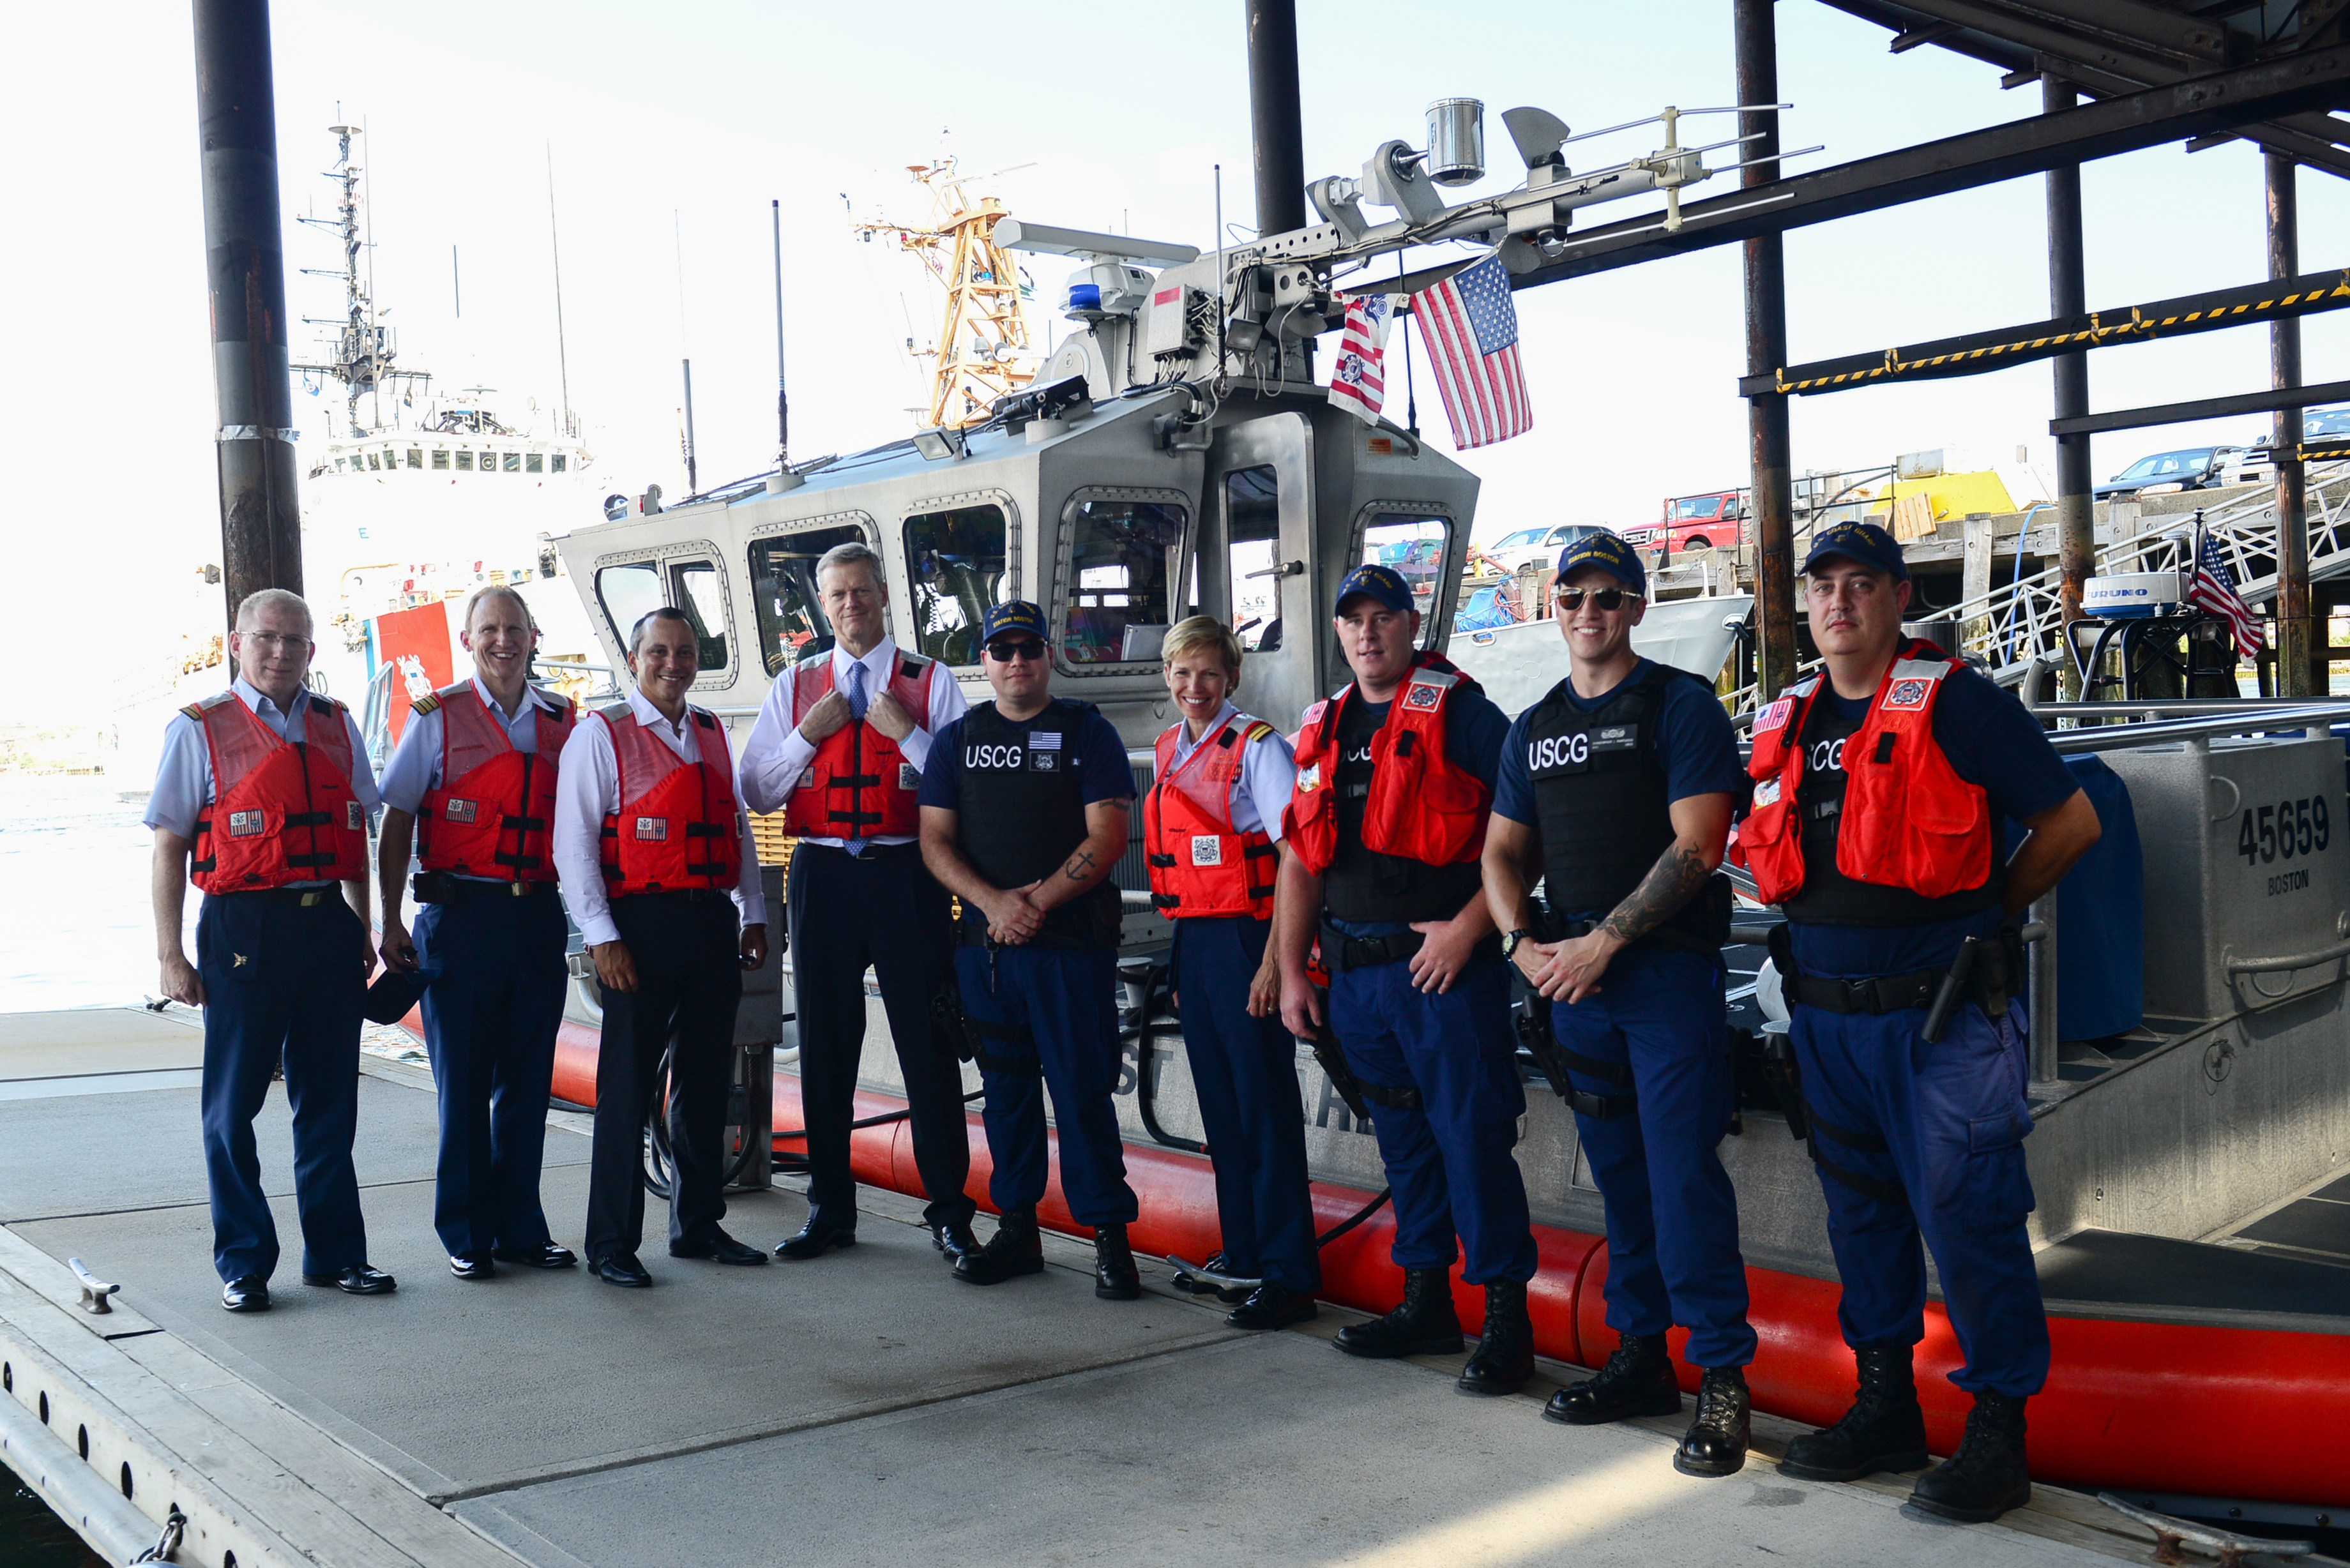 Massachusetts Gov. Charlie Baker and State Representative Aaron Michlewitz before getting underway in Boston Harbor with Coast Guard Station Boston Monday, Aug. 15, 2016. Baker and Michlewitz toured the Sector Boston's command center, met with Capt. Claudia Gelzer, Captain of the Port of Boston and commander of Sector Boston, and got underway with a Station Boston 45-foot response boat crew to observe the key recourses and critical infrastructures in and around Boston Harbor protected by Boston-based Coast Guard units. U.S. Coast Guard photo by Petty Officer 2nd Class Cynthia Oldham